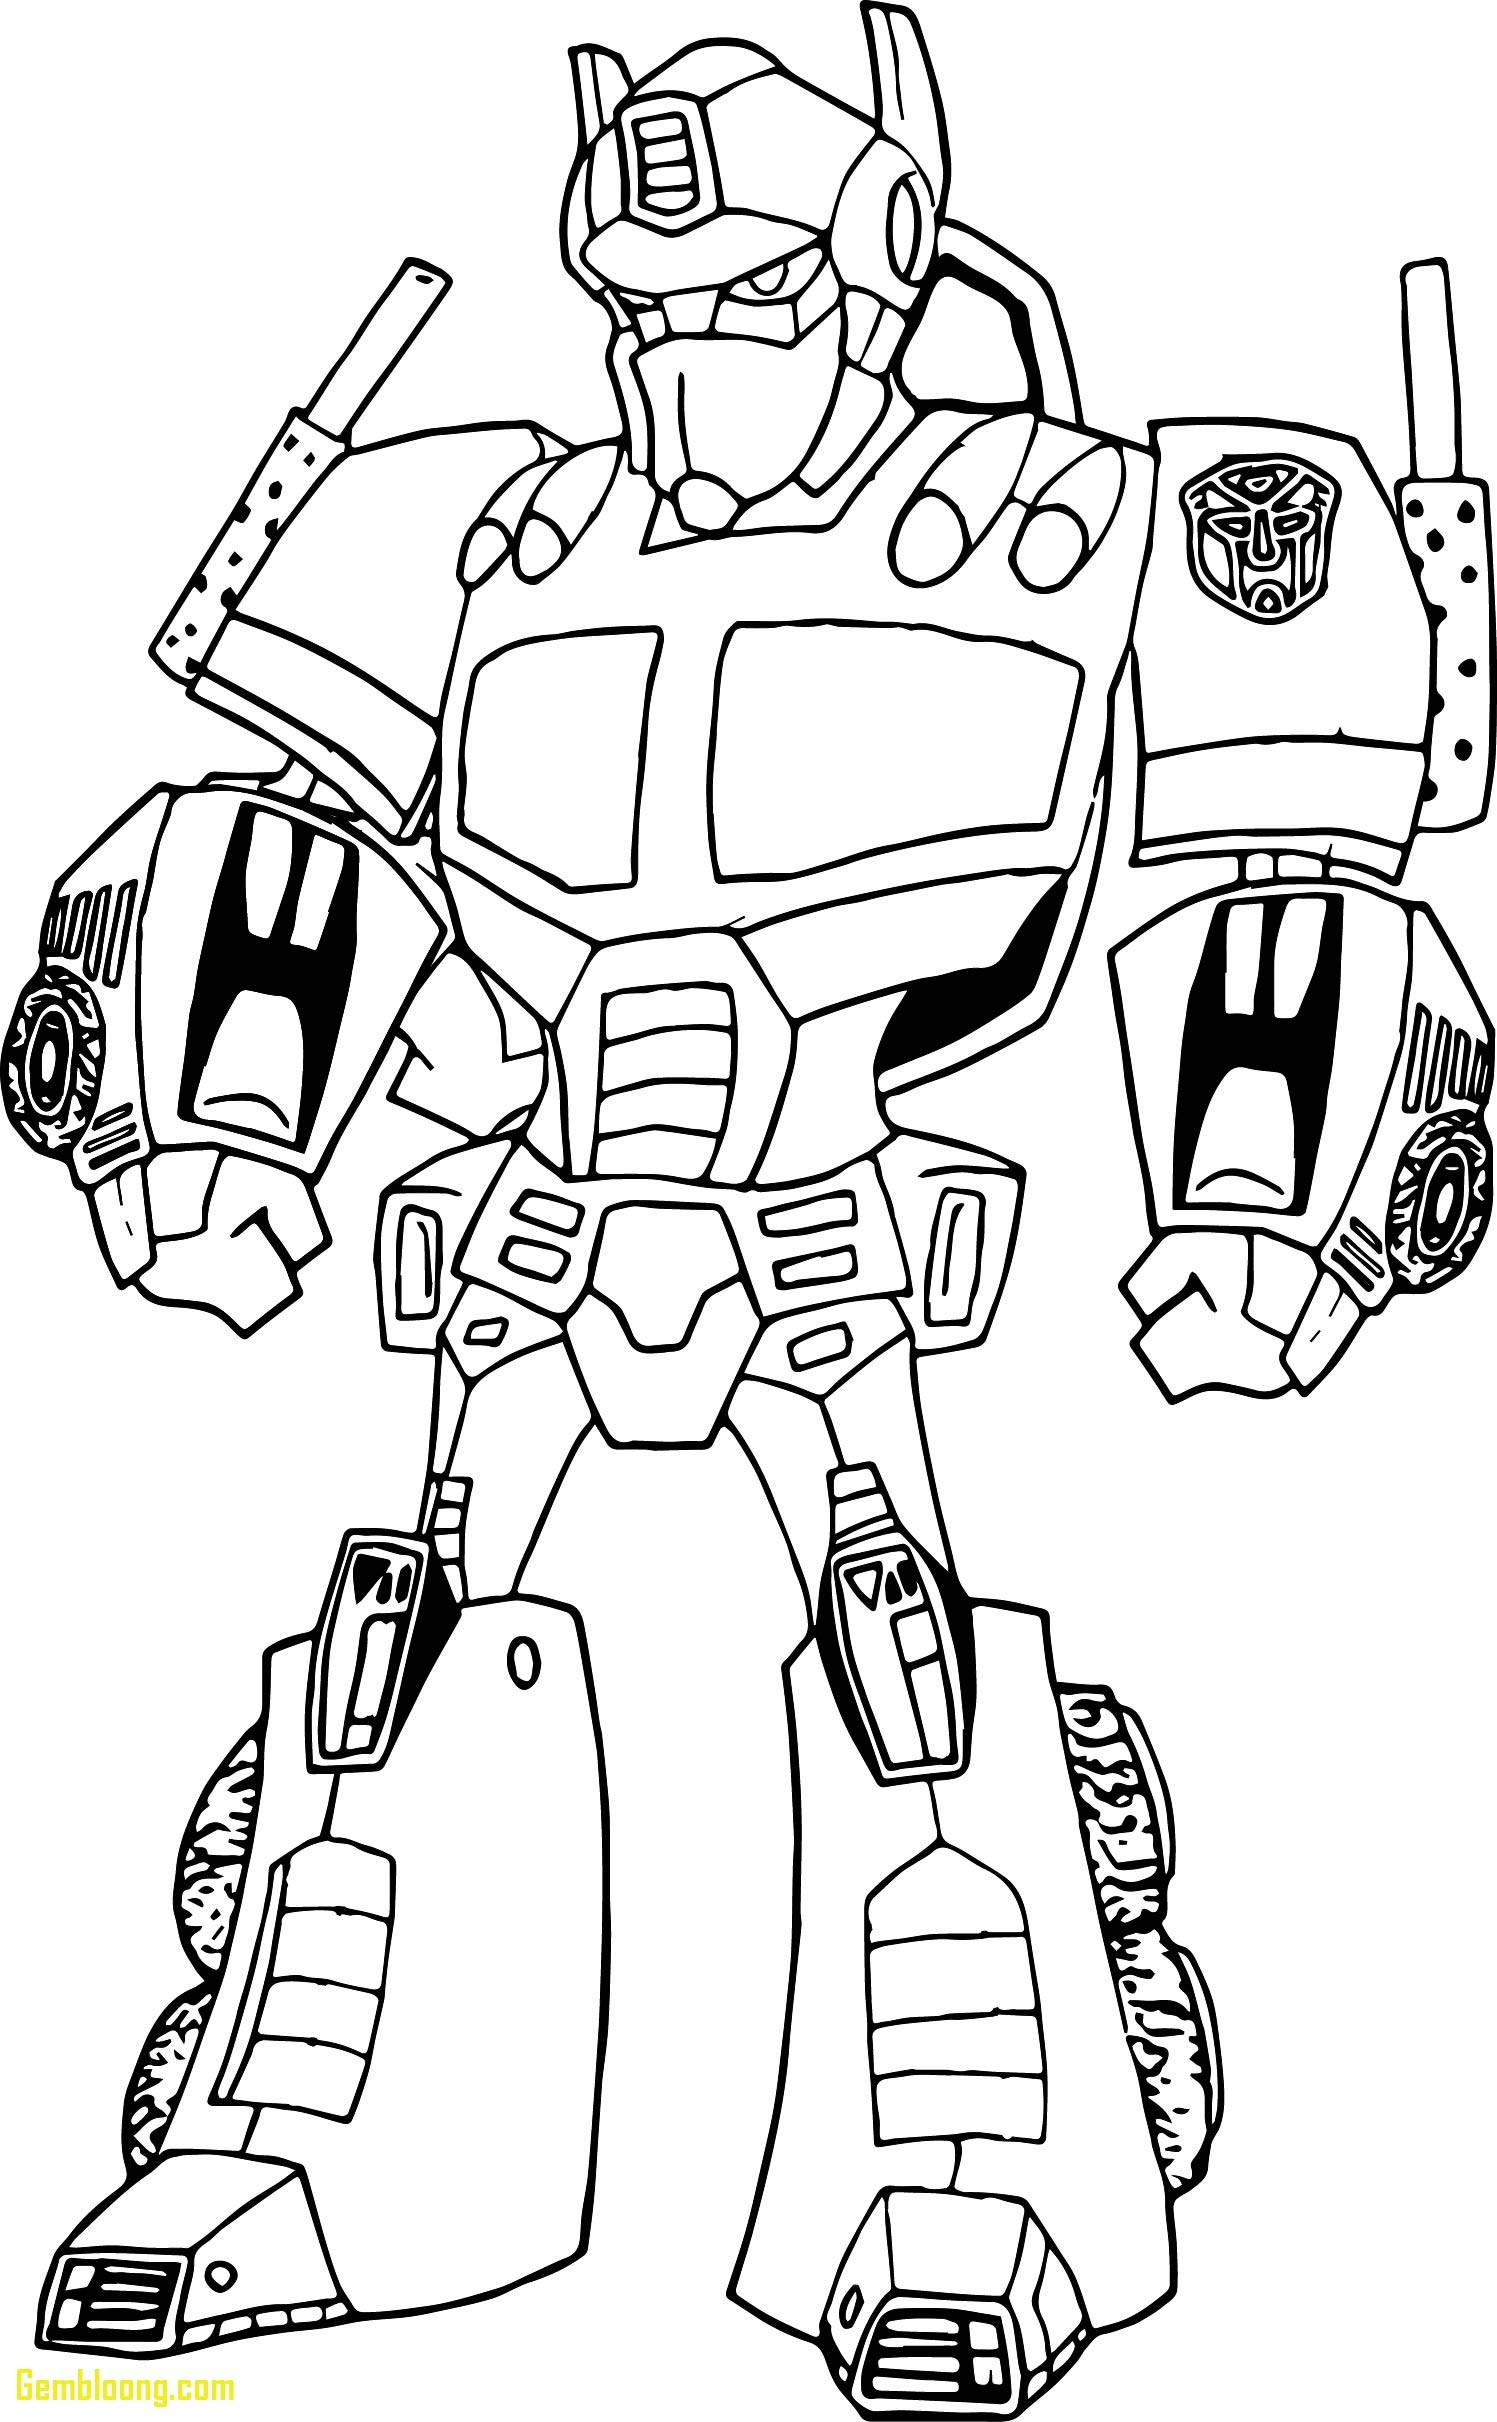 Lego Robot Coloring Pages At Getcolorings